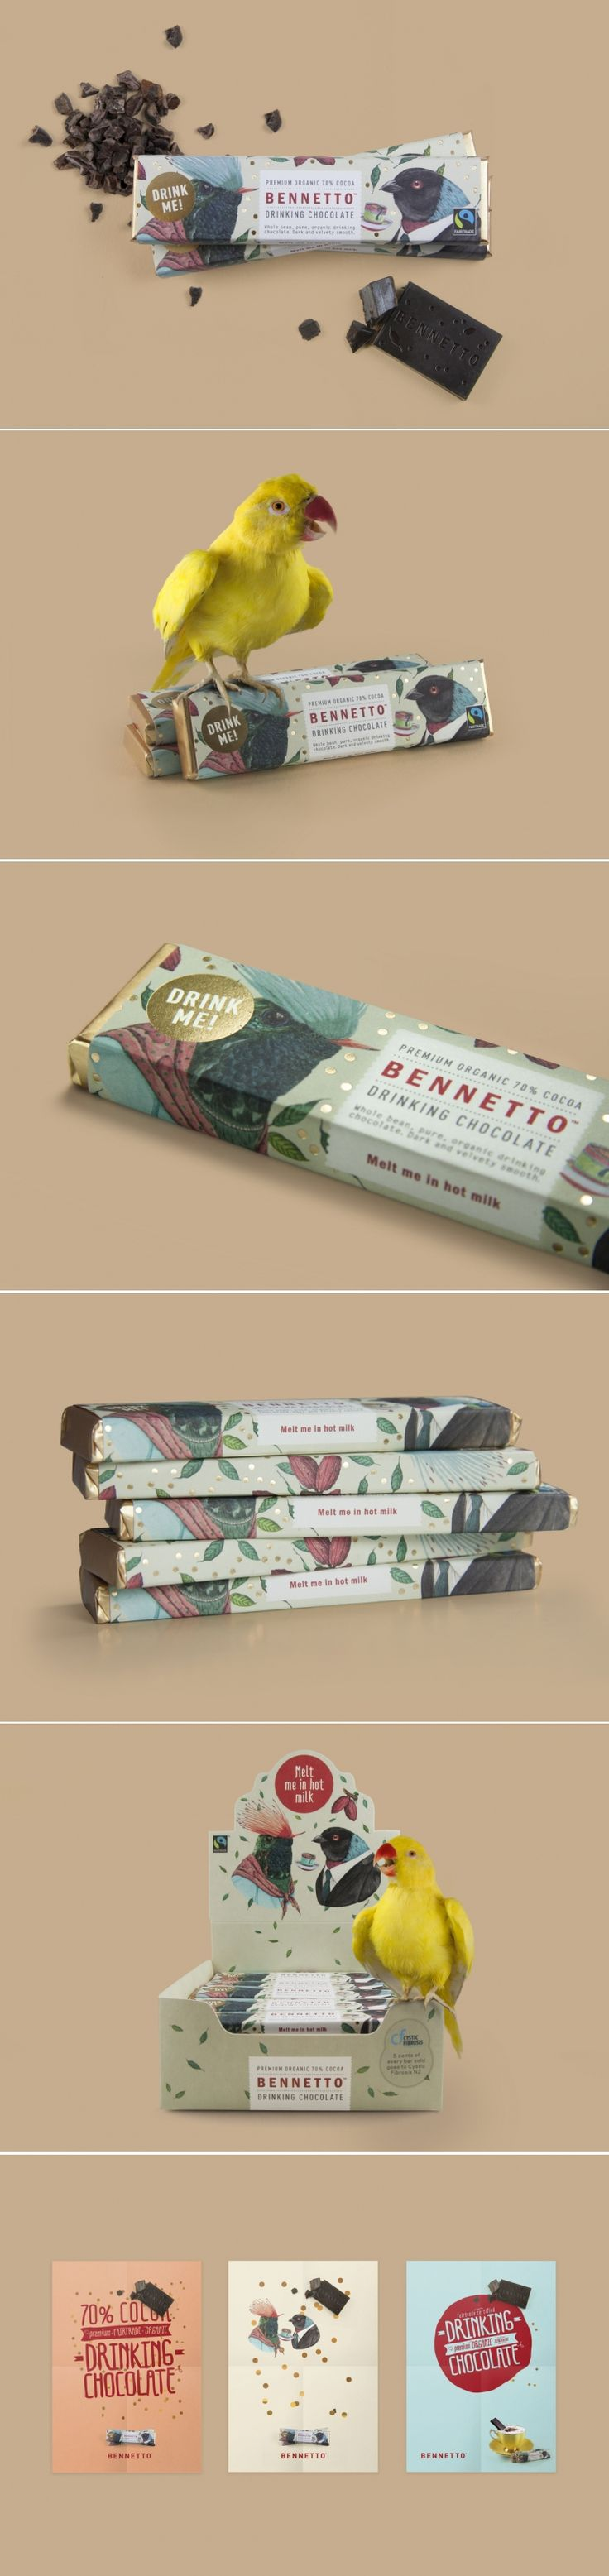 Bennetto Drinking Chocolate — The Dieline - Branding & Packaging Design